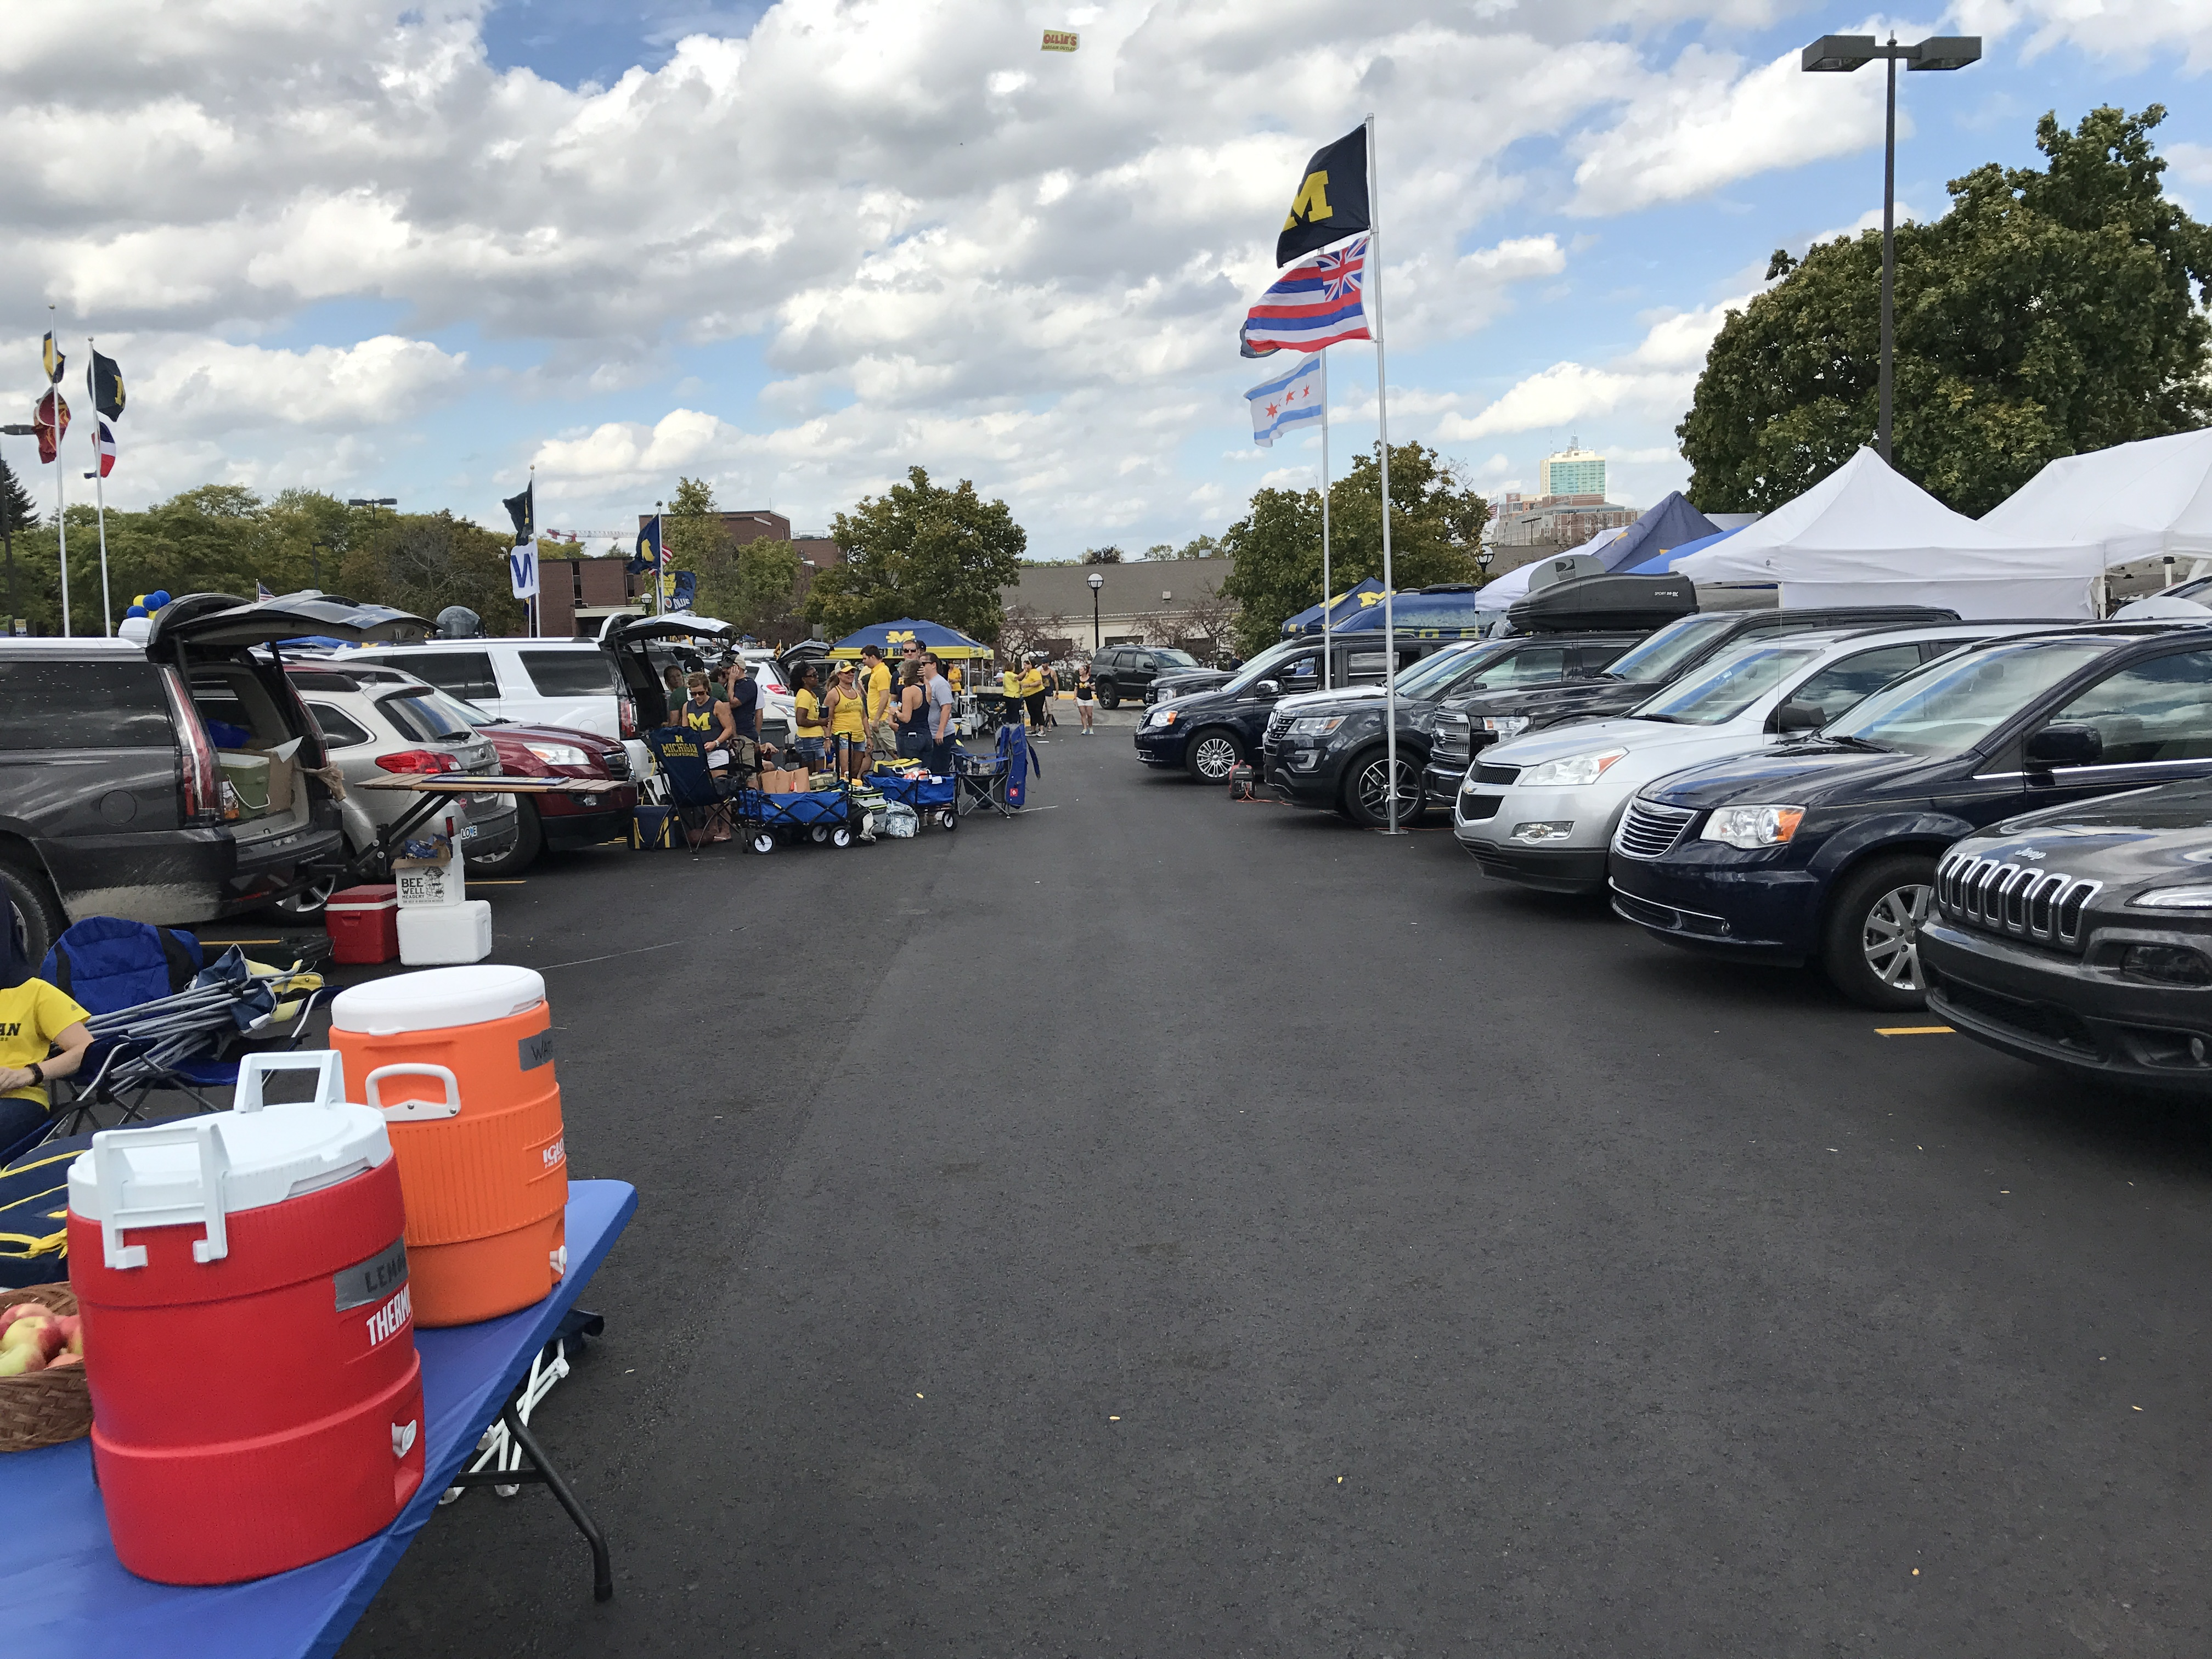 to show our appreciation we are pleased to offer donors the opportunity to park and tailgate in the athletic department parking lots surrounding michigan